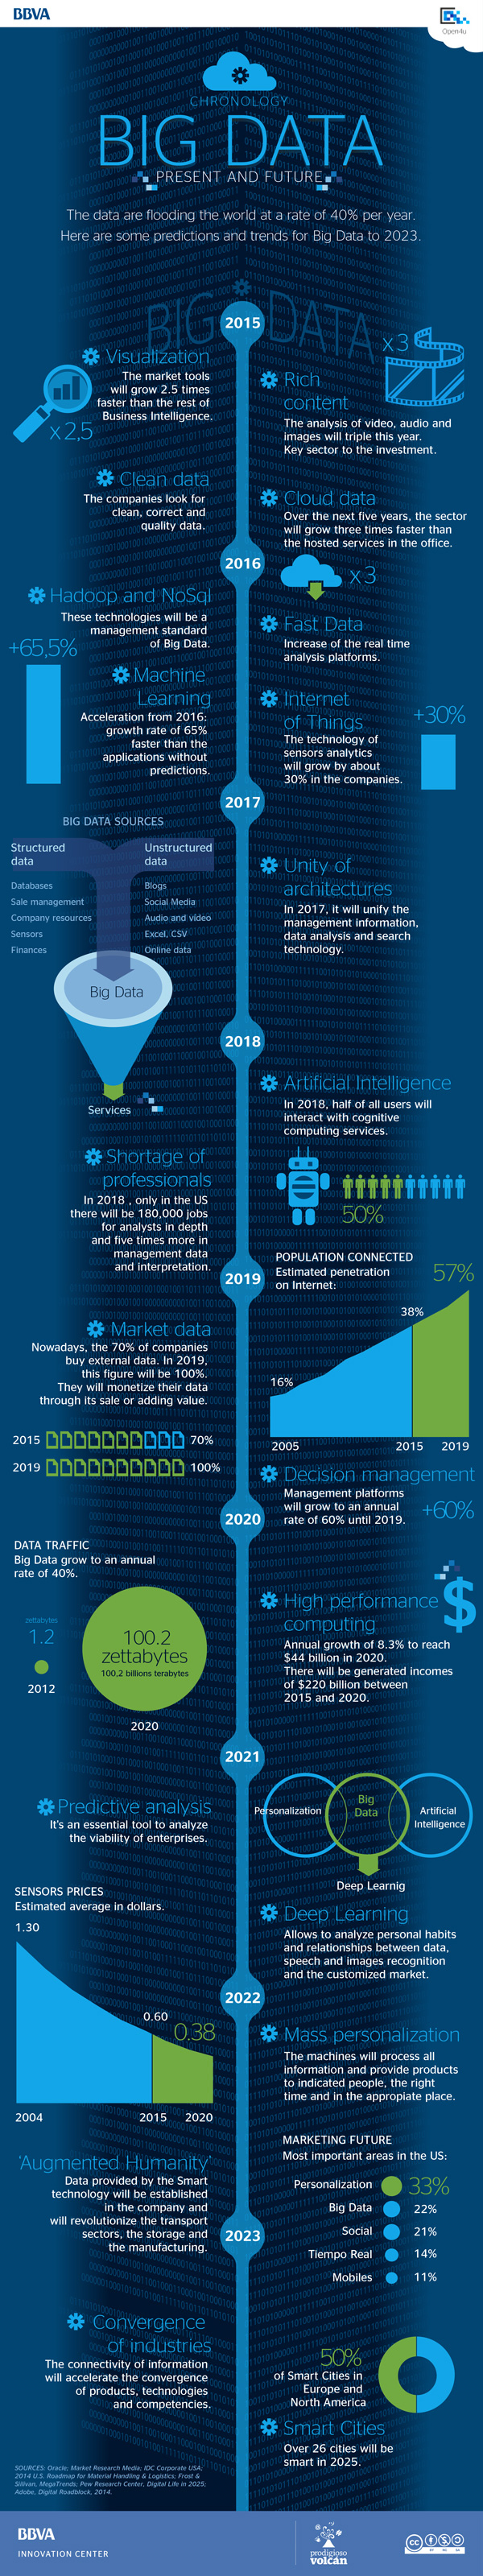 Infographic: Big Data, present and future